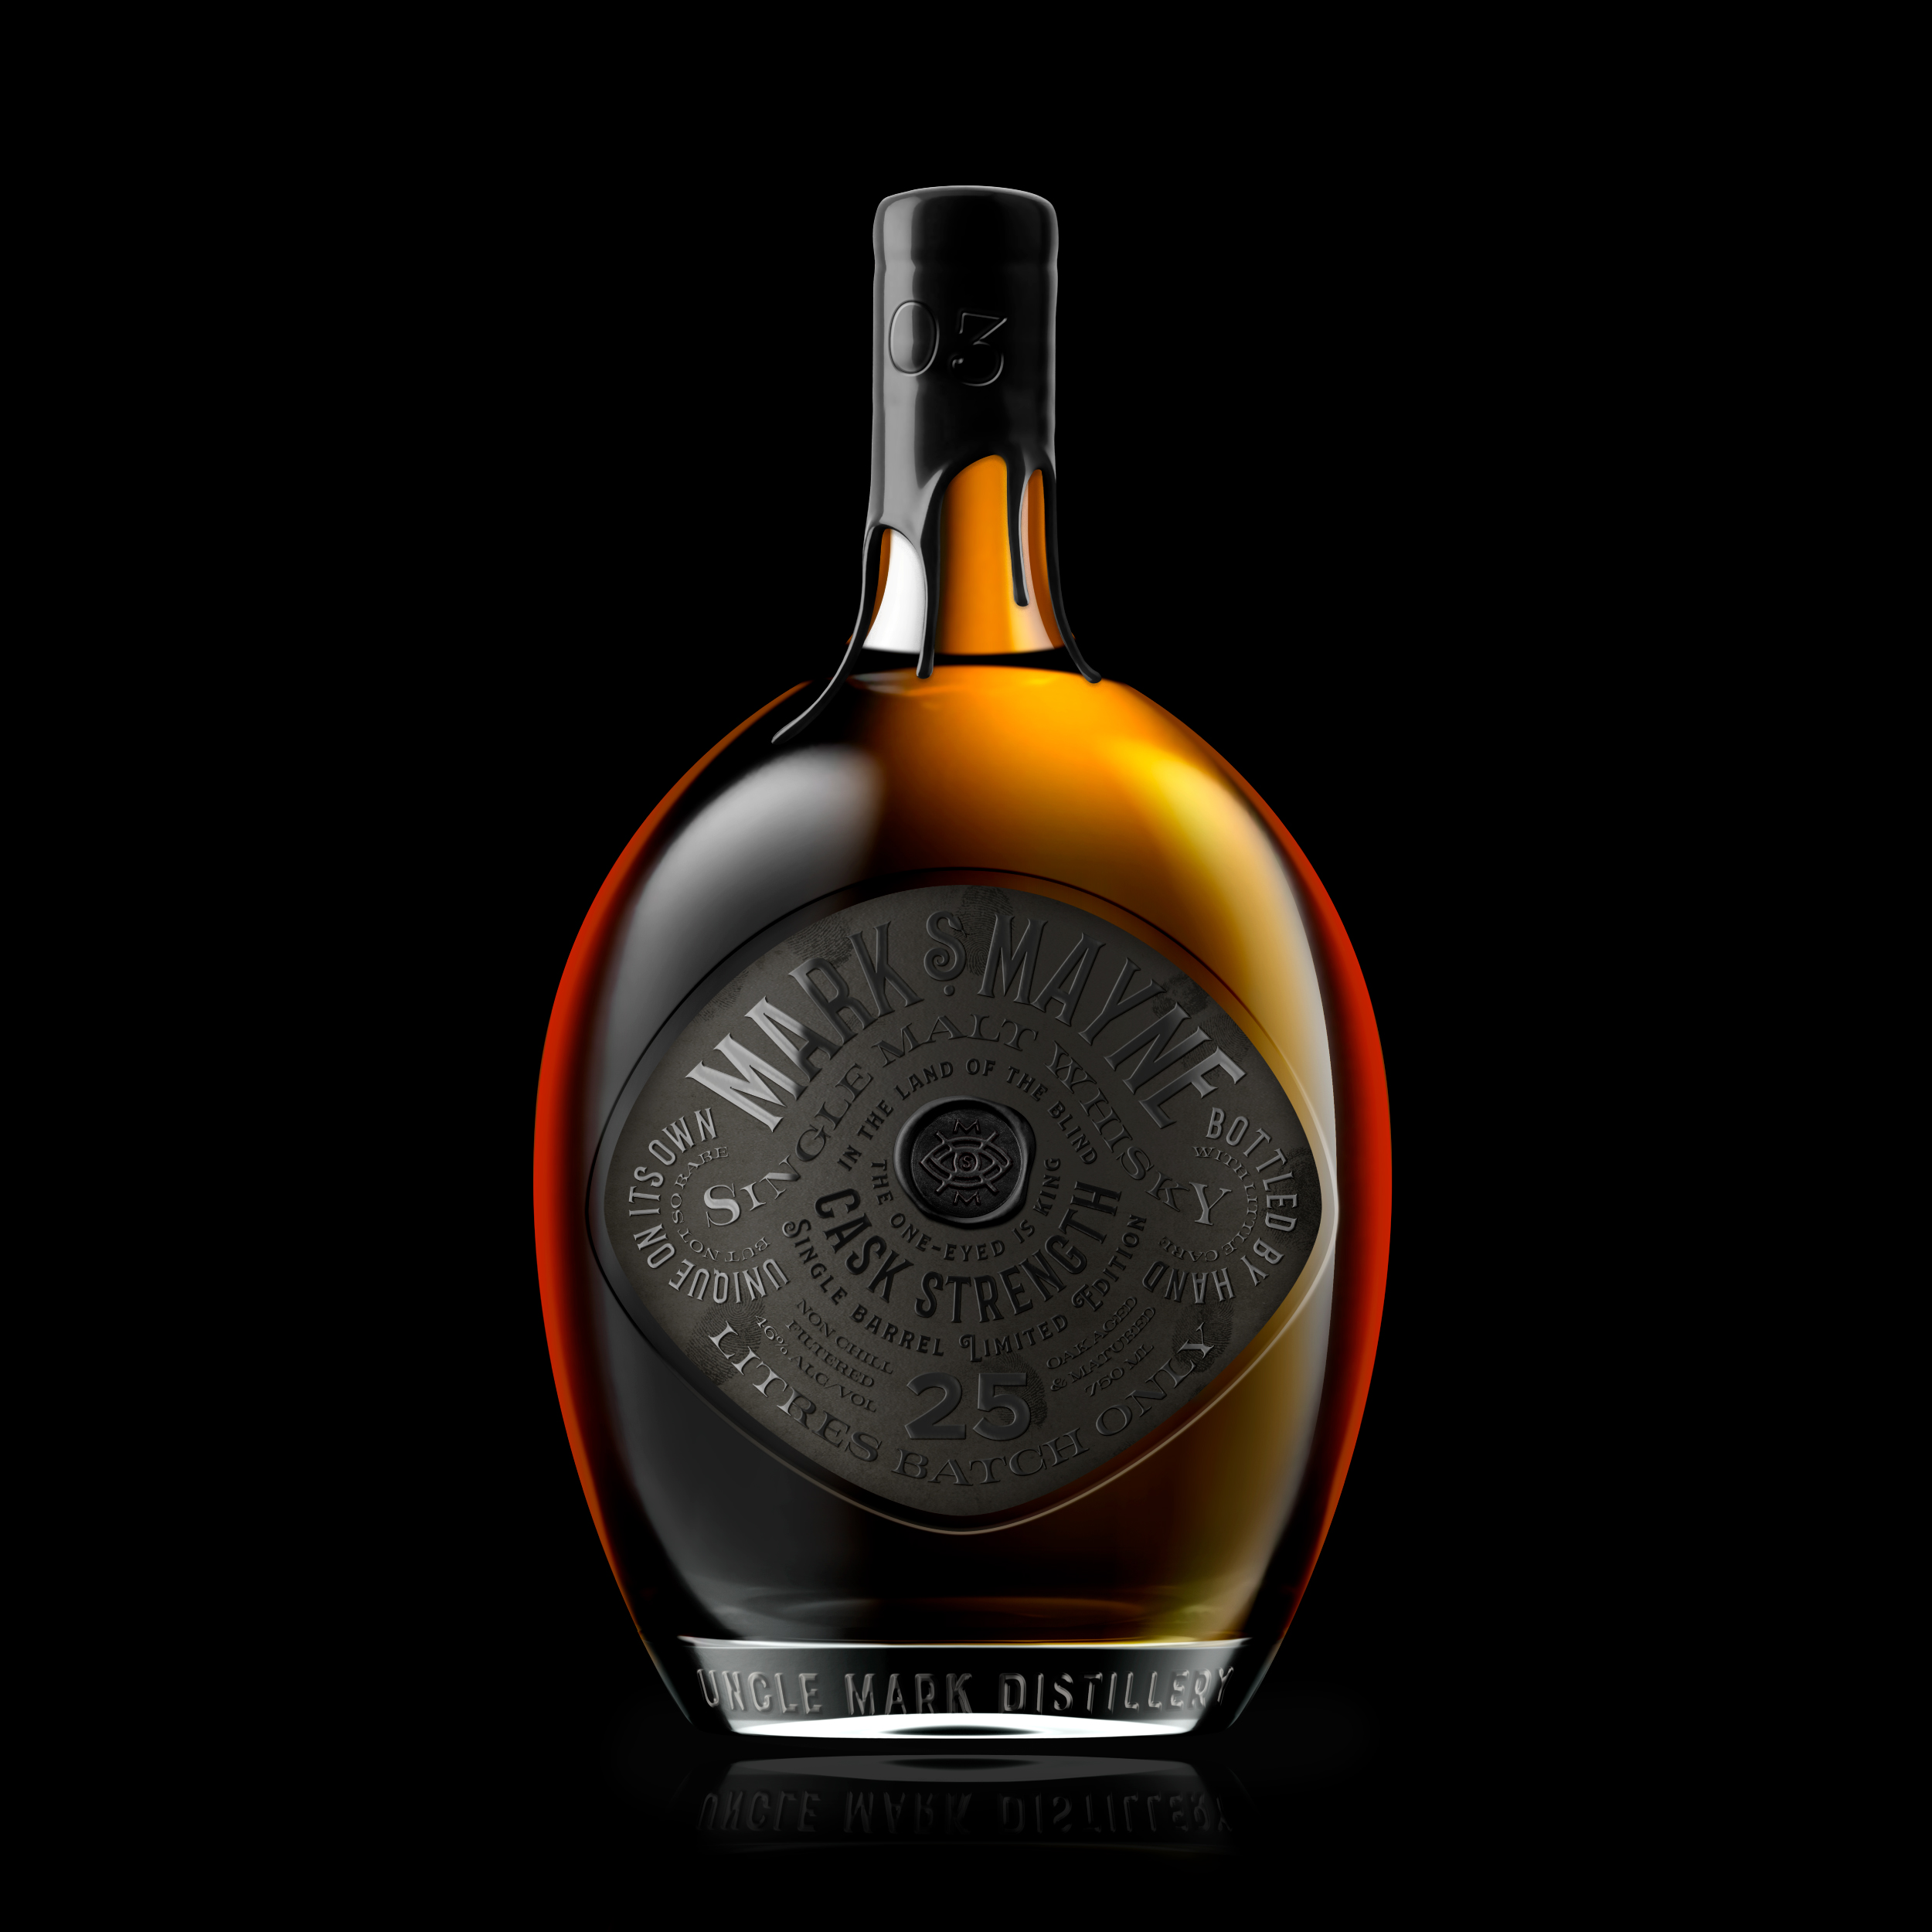 Not Just Another Garage Whisky Designed by Jacomy Mayne and Oveja Quiroga